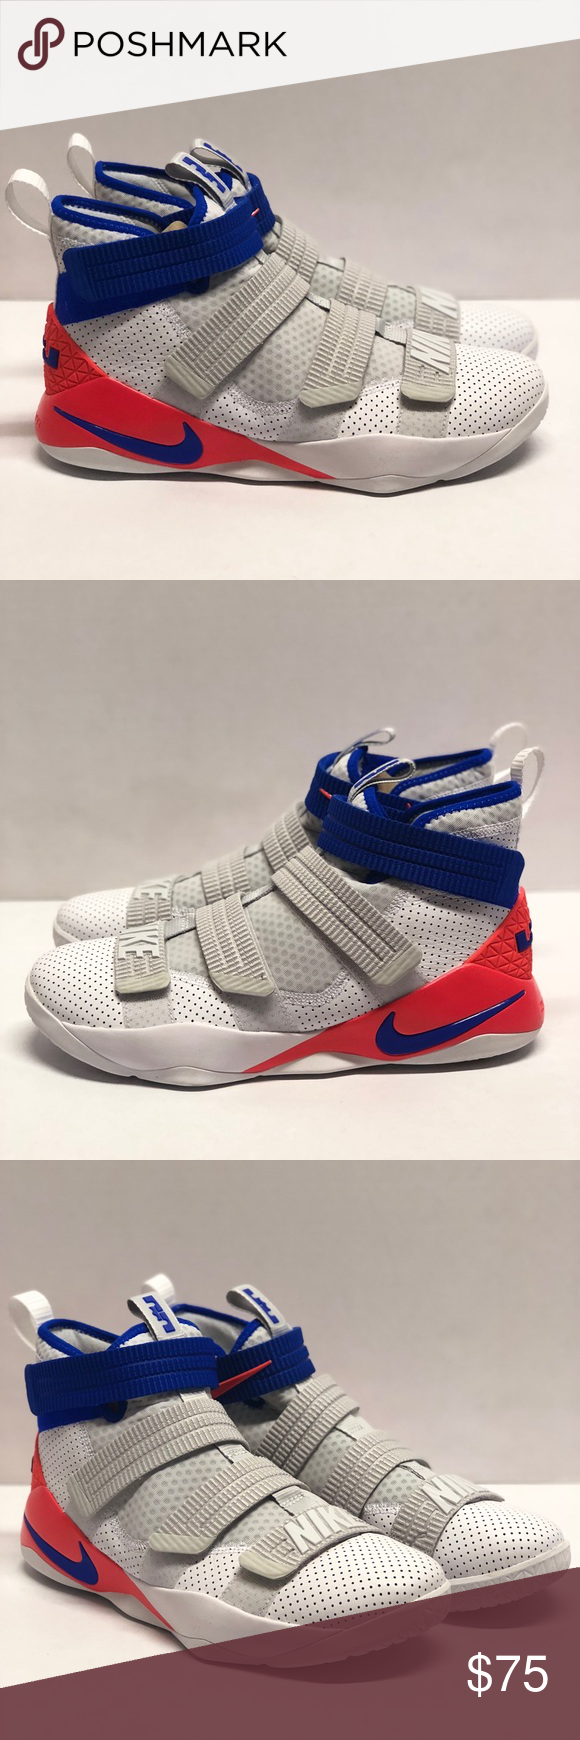 a398ed74d5fc Nike LeBron Soldier XI sfg Mens Sz 11 12 shoes Brand new open box ...